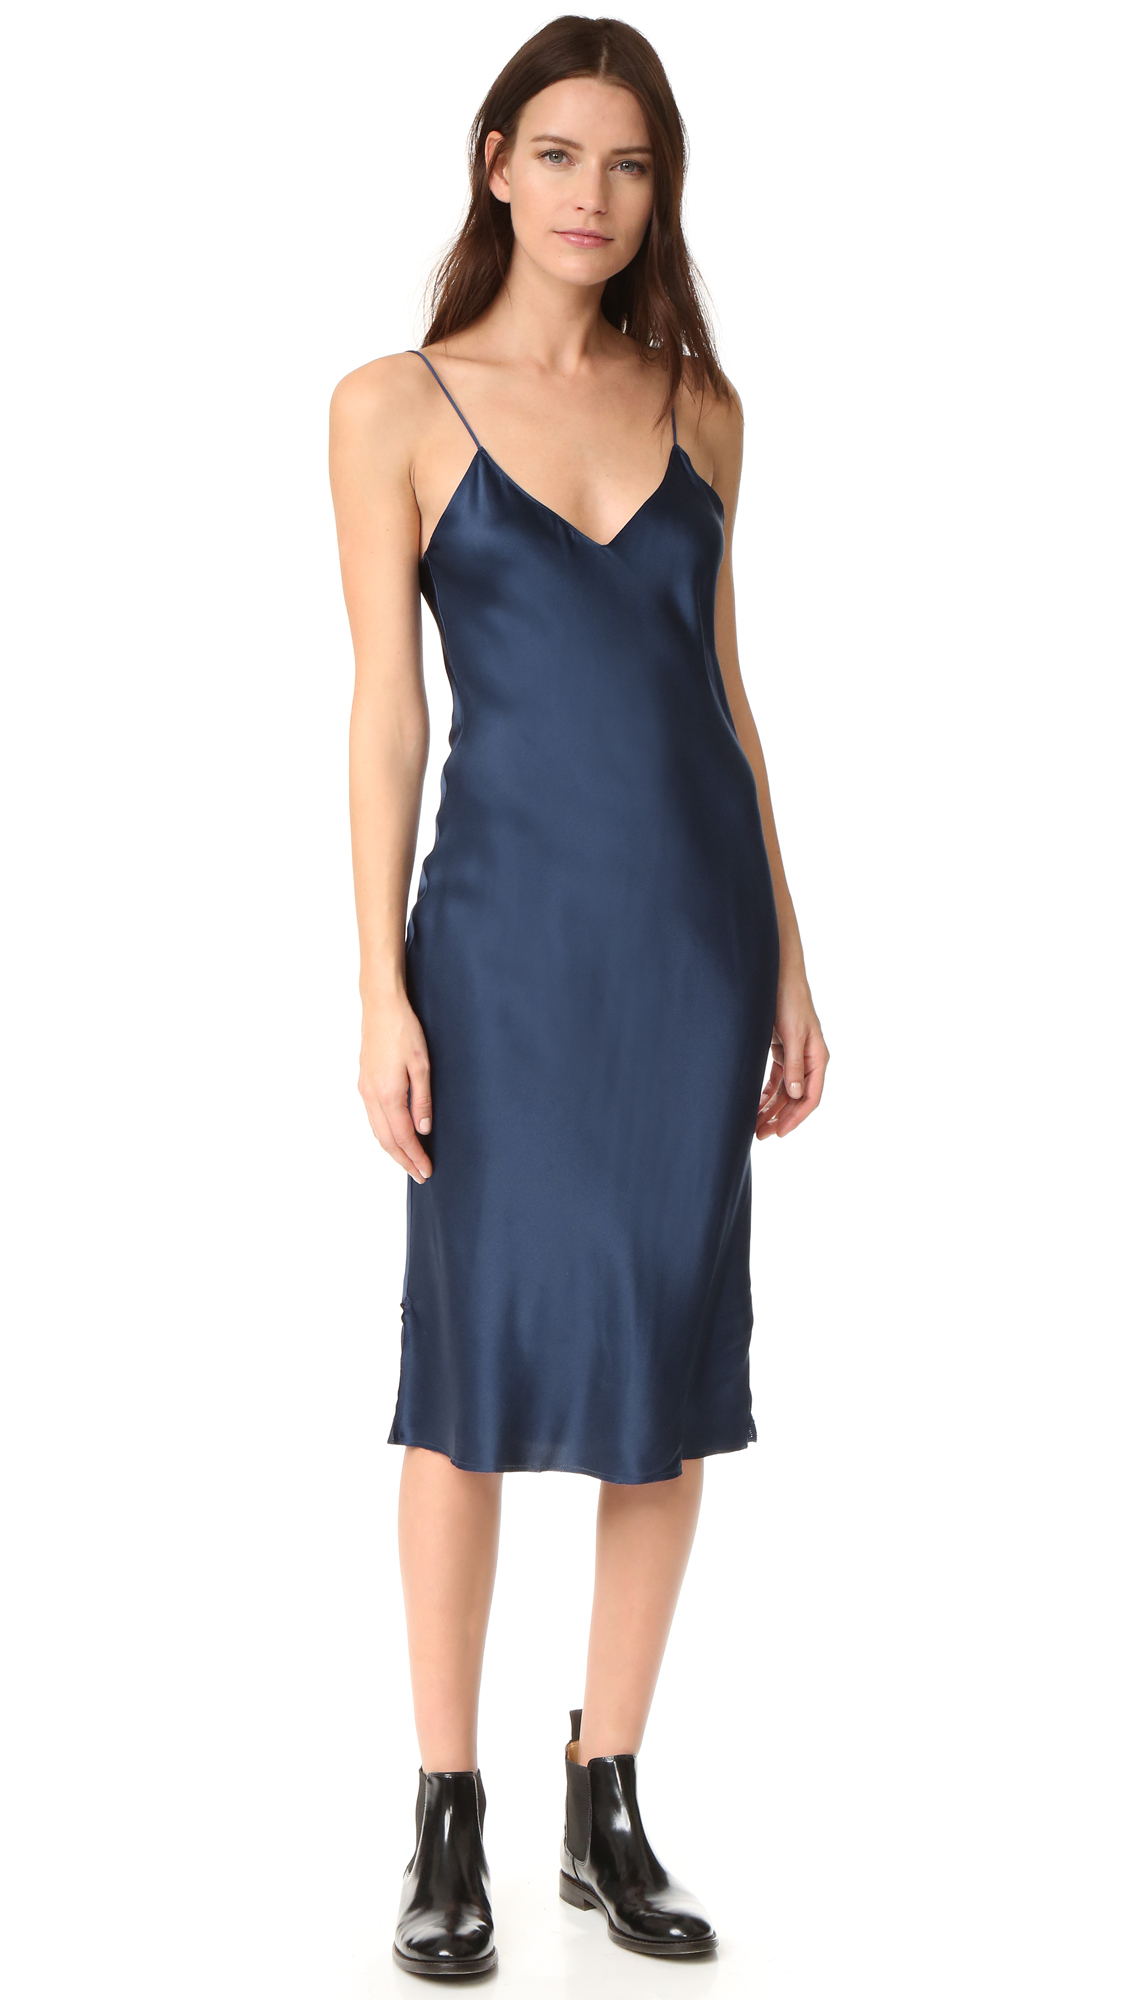 Emerson Thorpe Hallie Slip Dress - Royal Blue